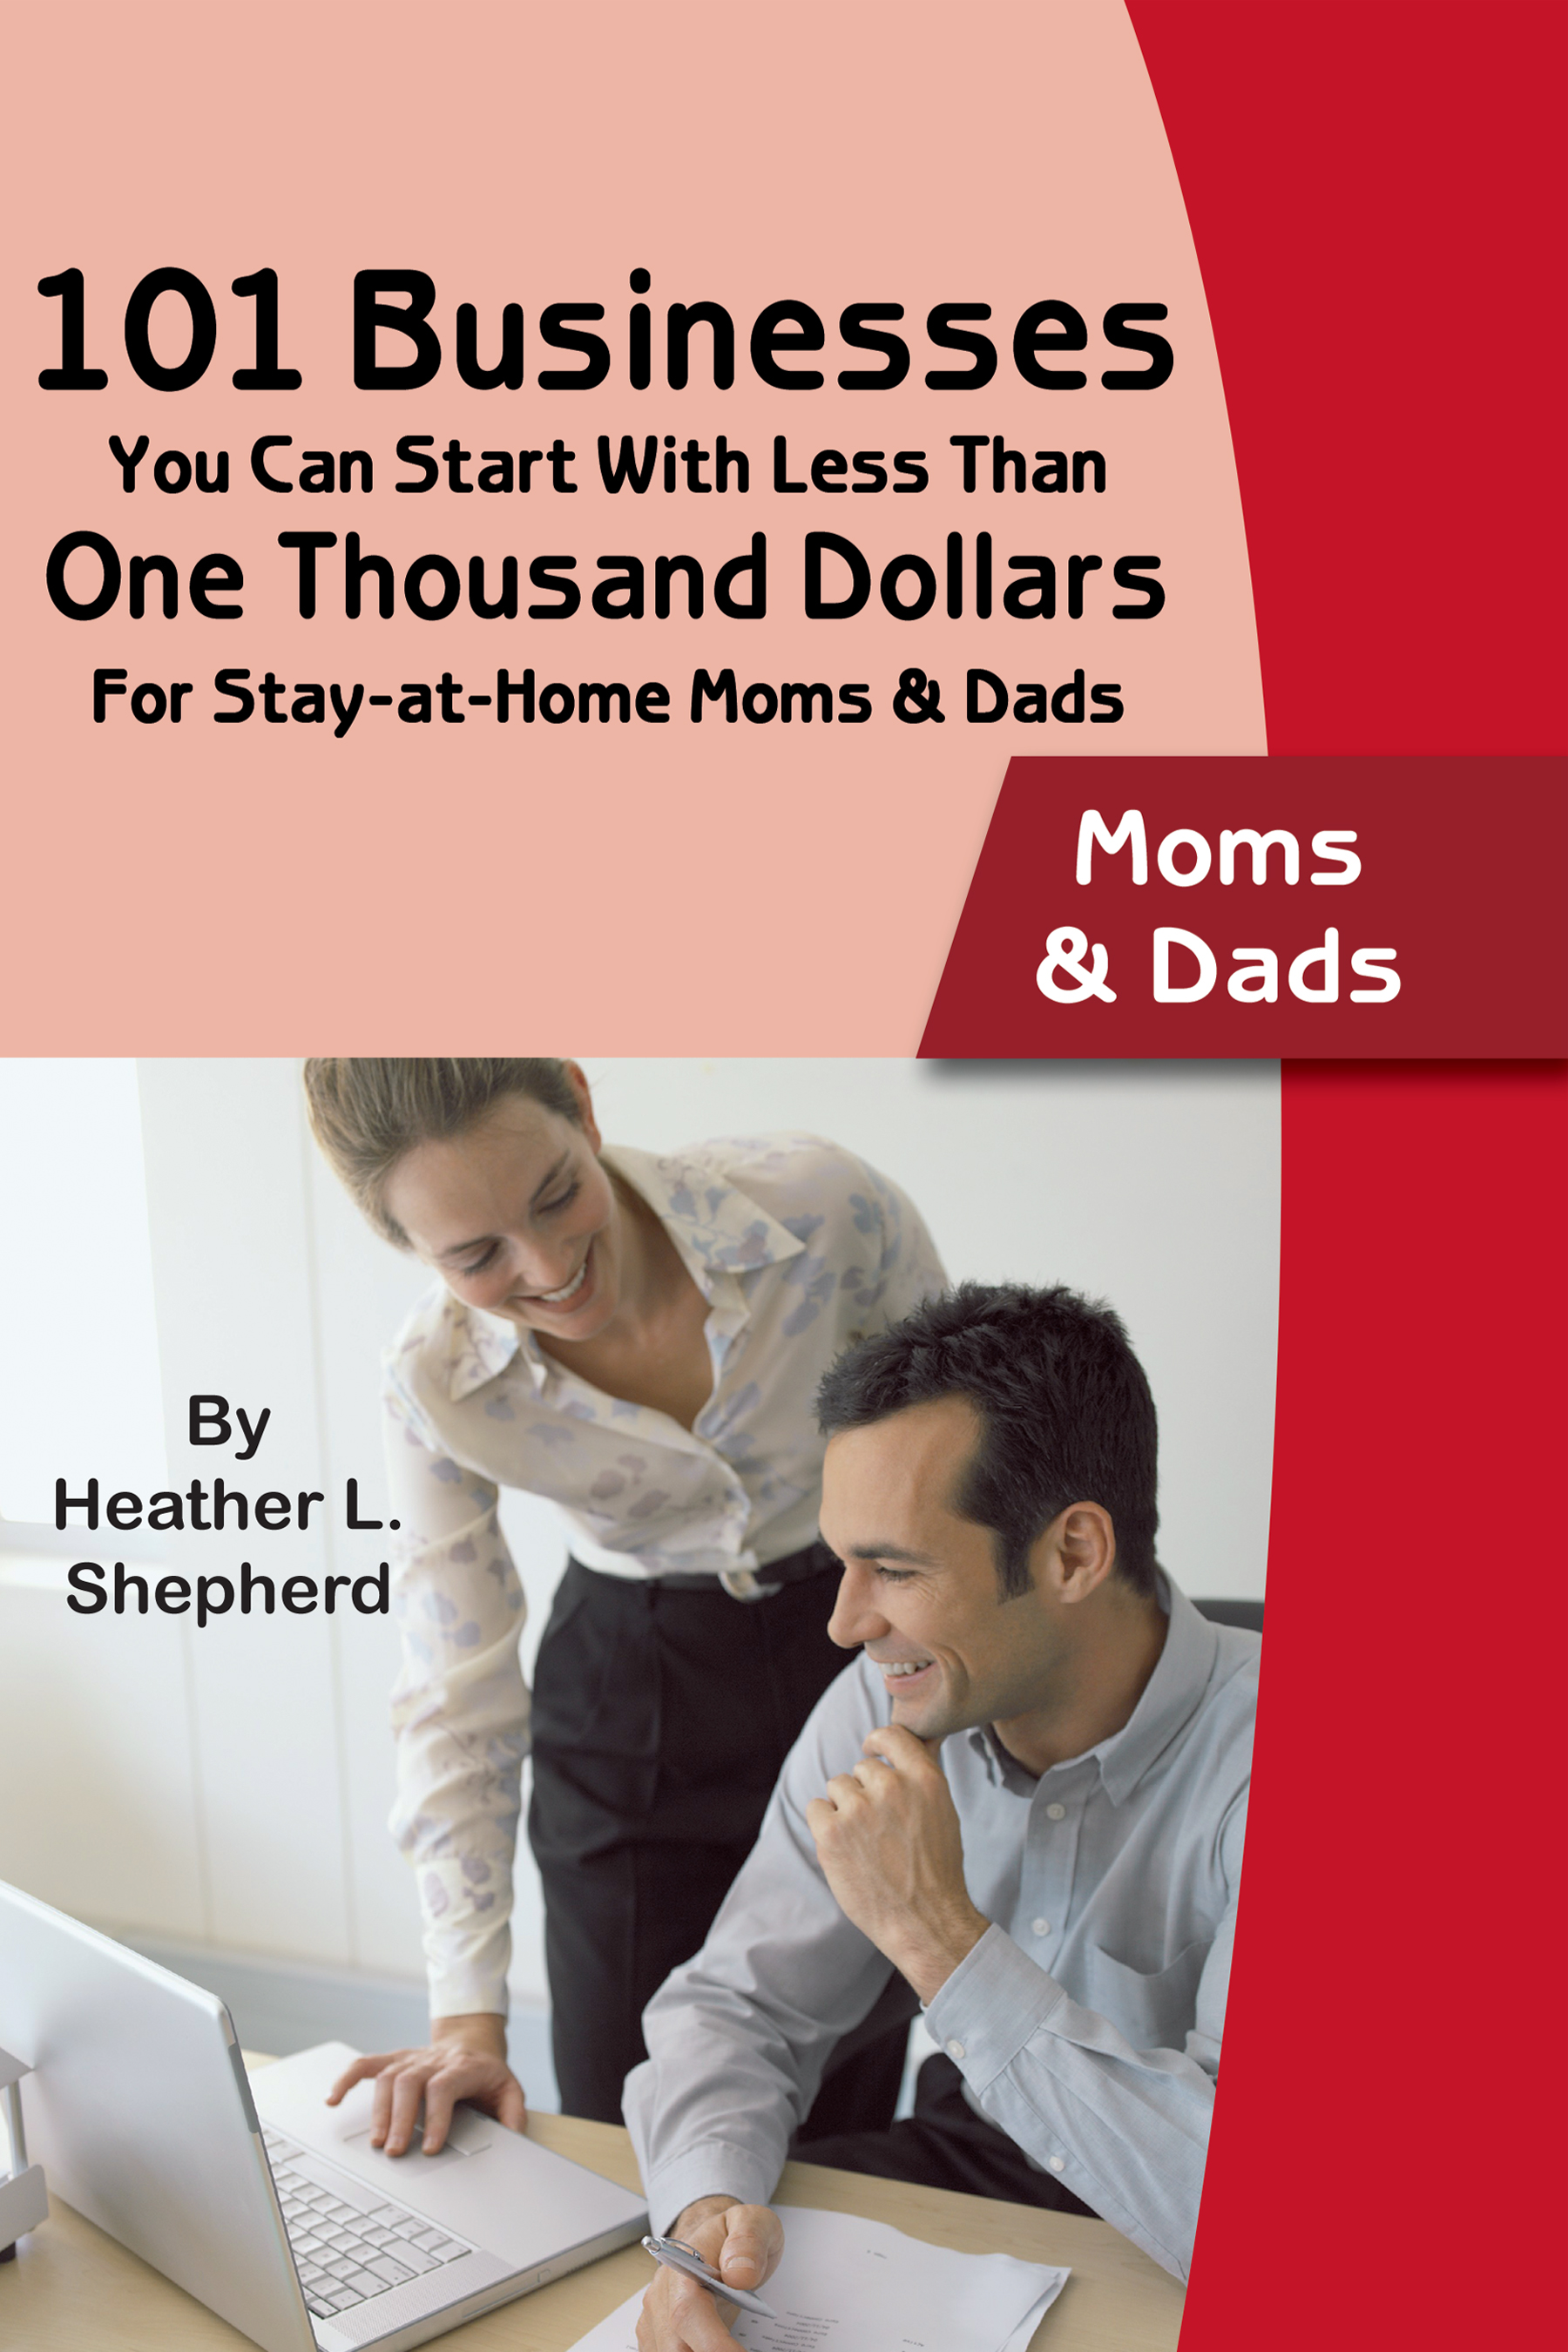 101 Businesses You Can Start With Less Than One Thousand Dollars For Stay-at-Home Moms & Dads